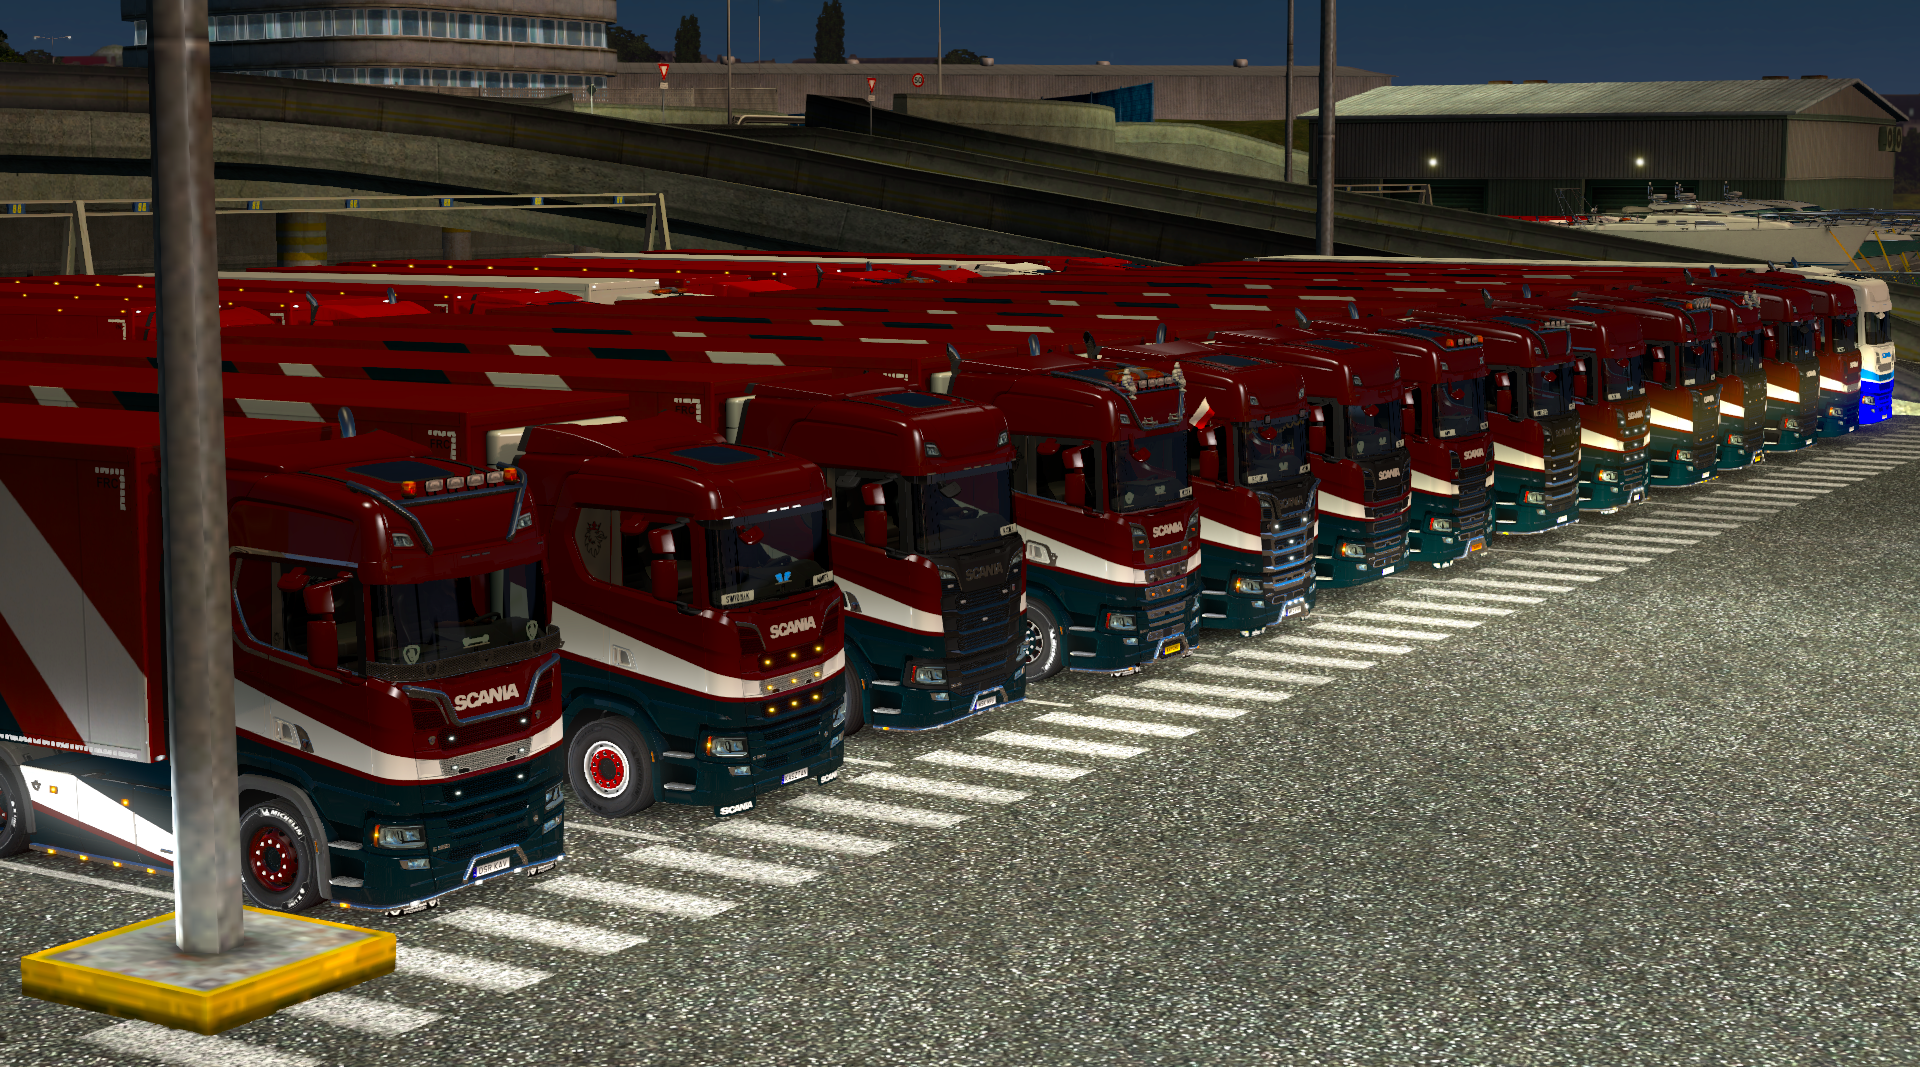 ets2_20190406_203600_00.png